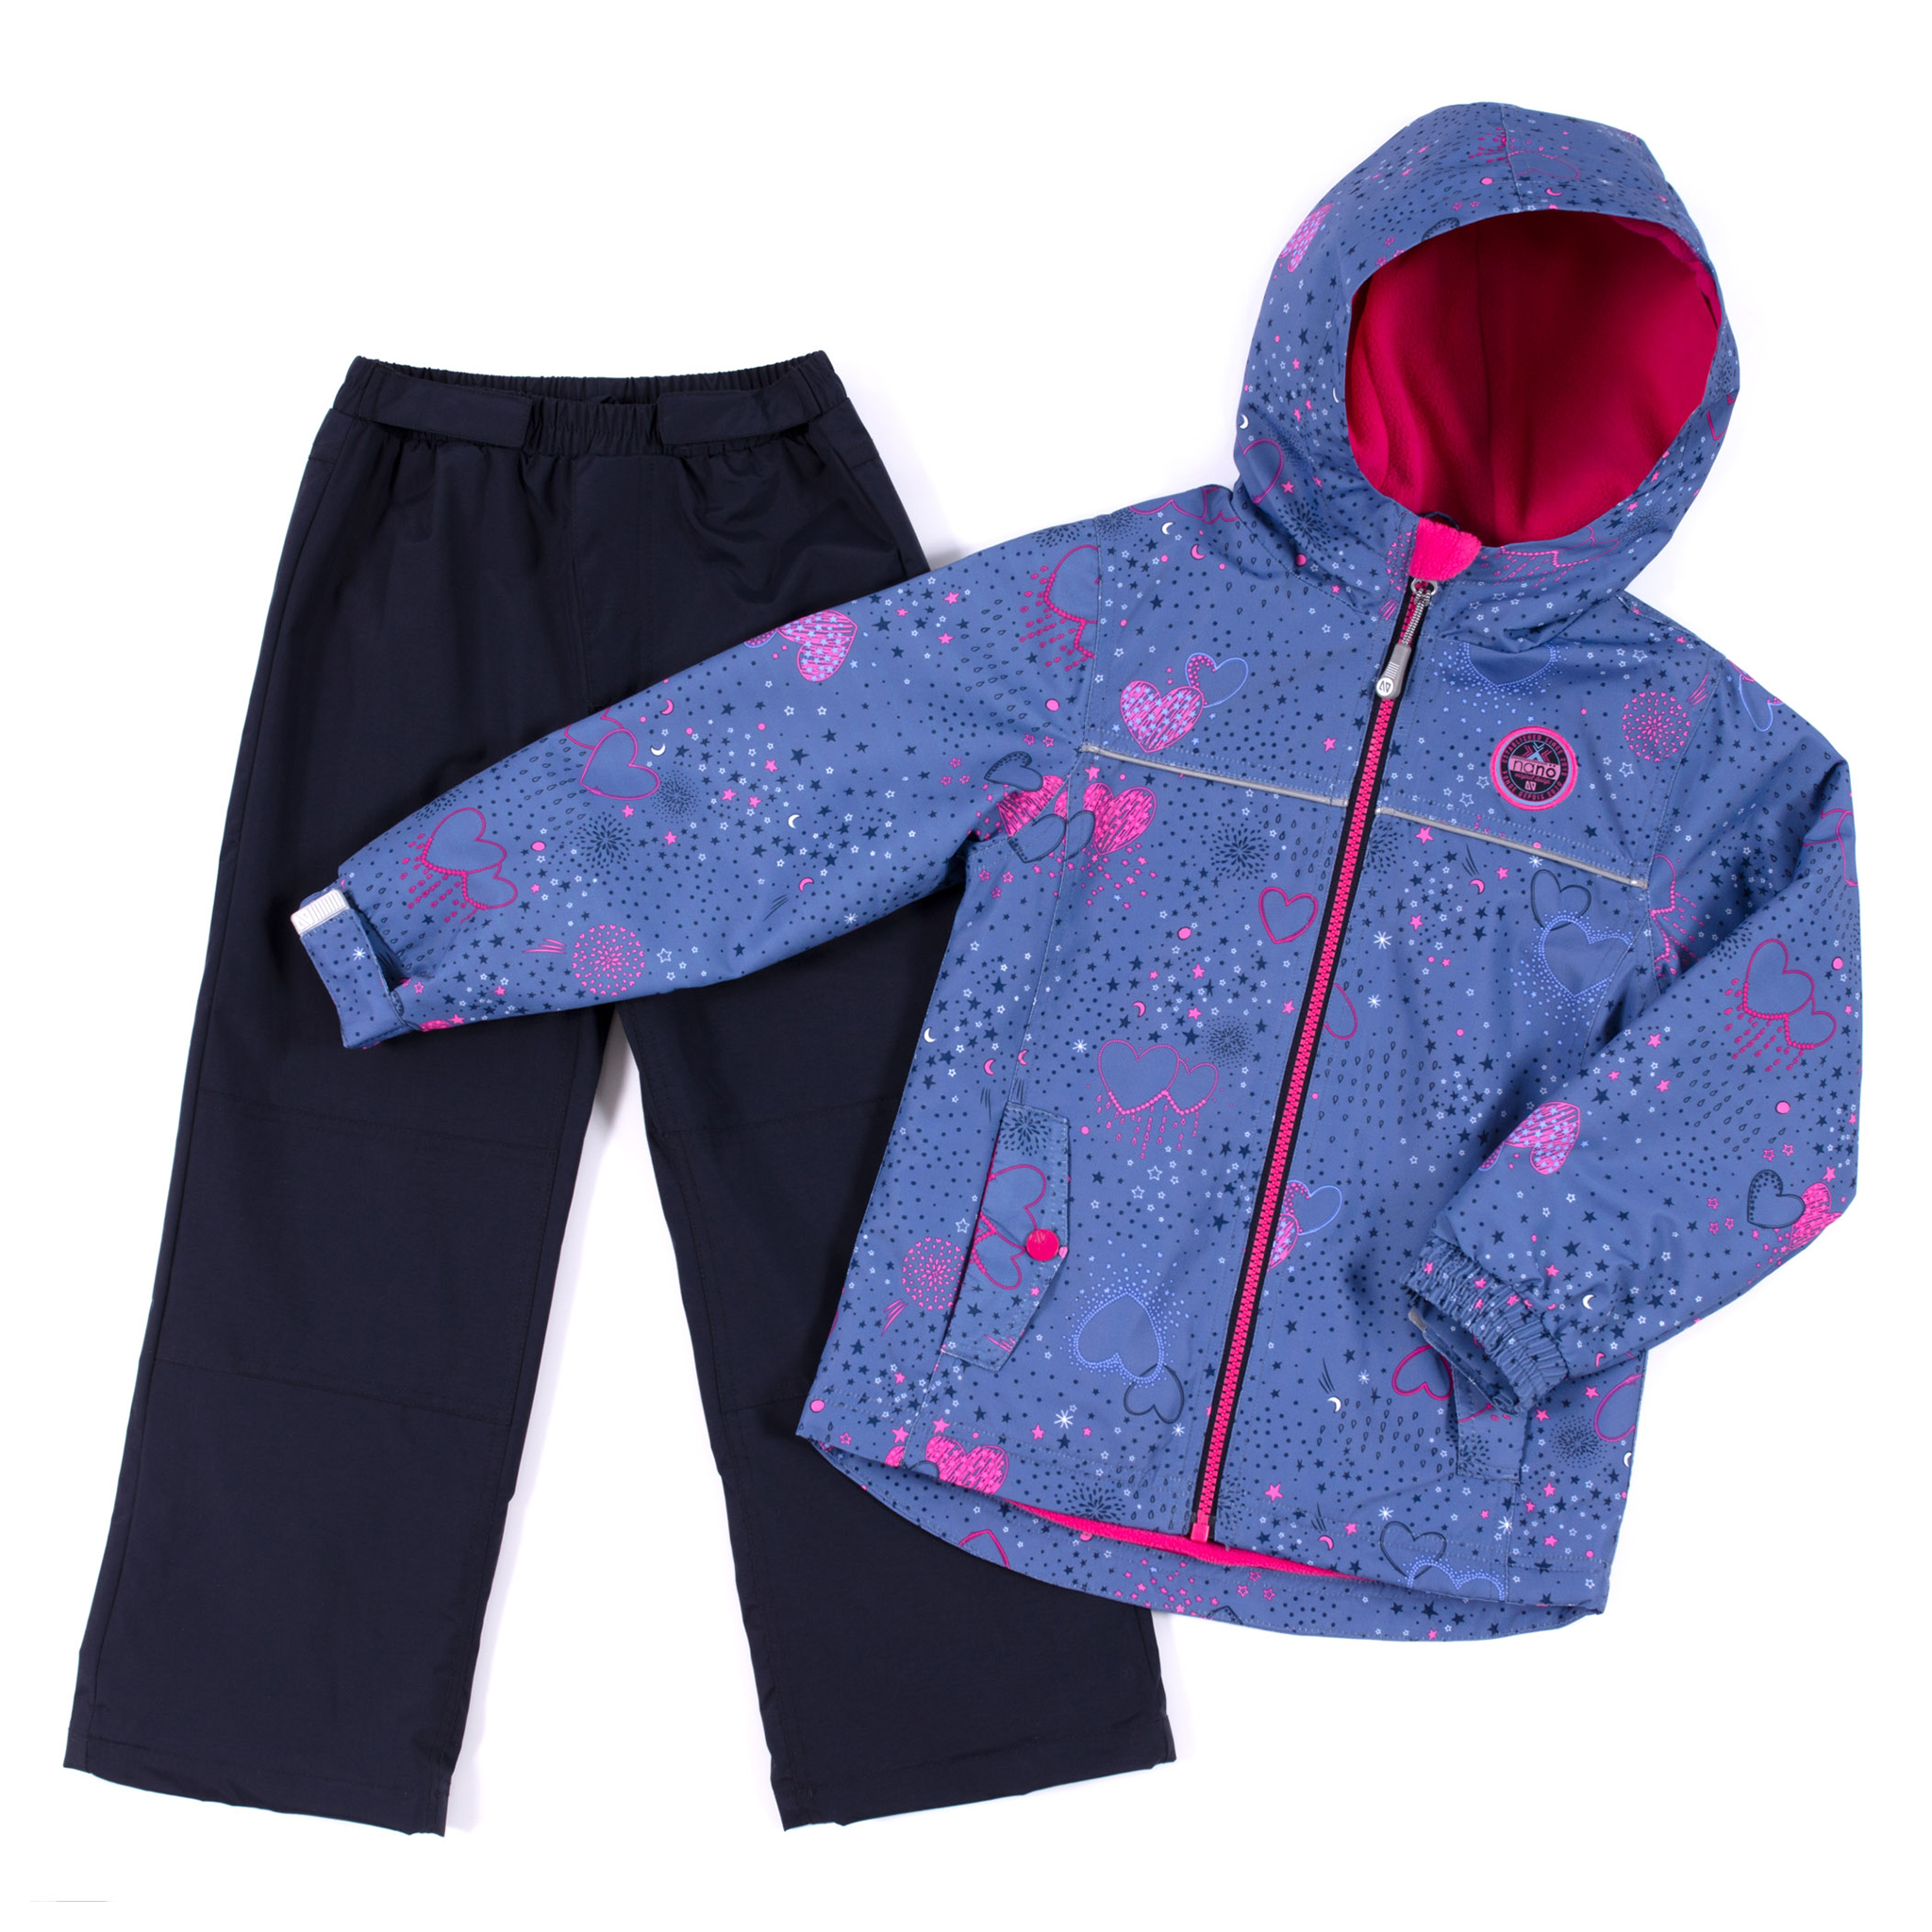 2 pcs outerwear Venise - Blue - Girls